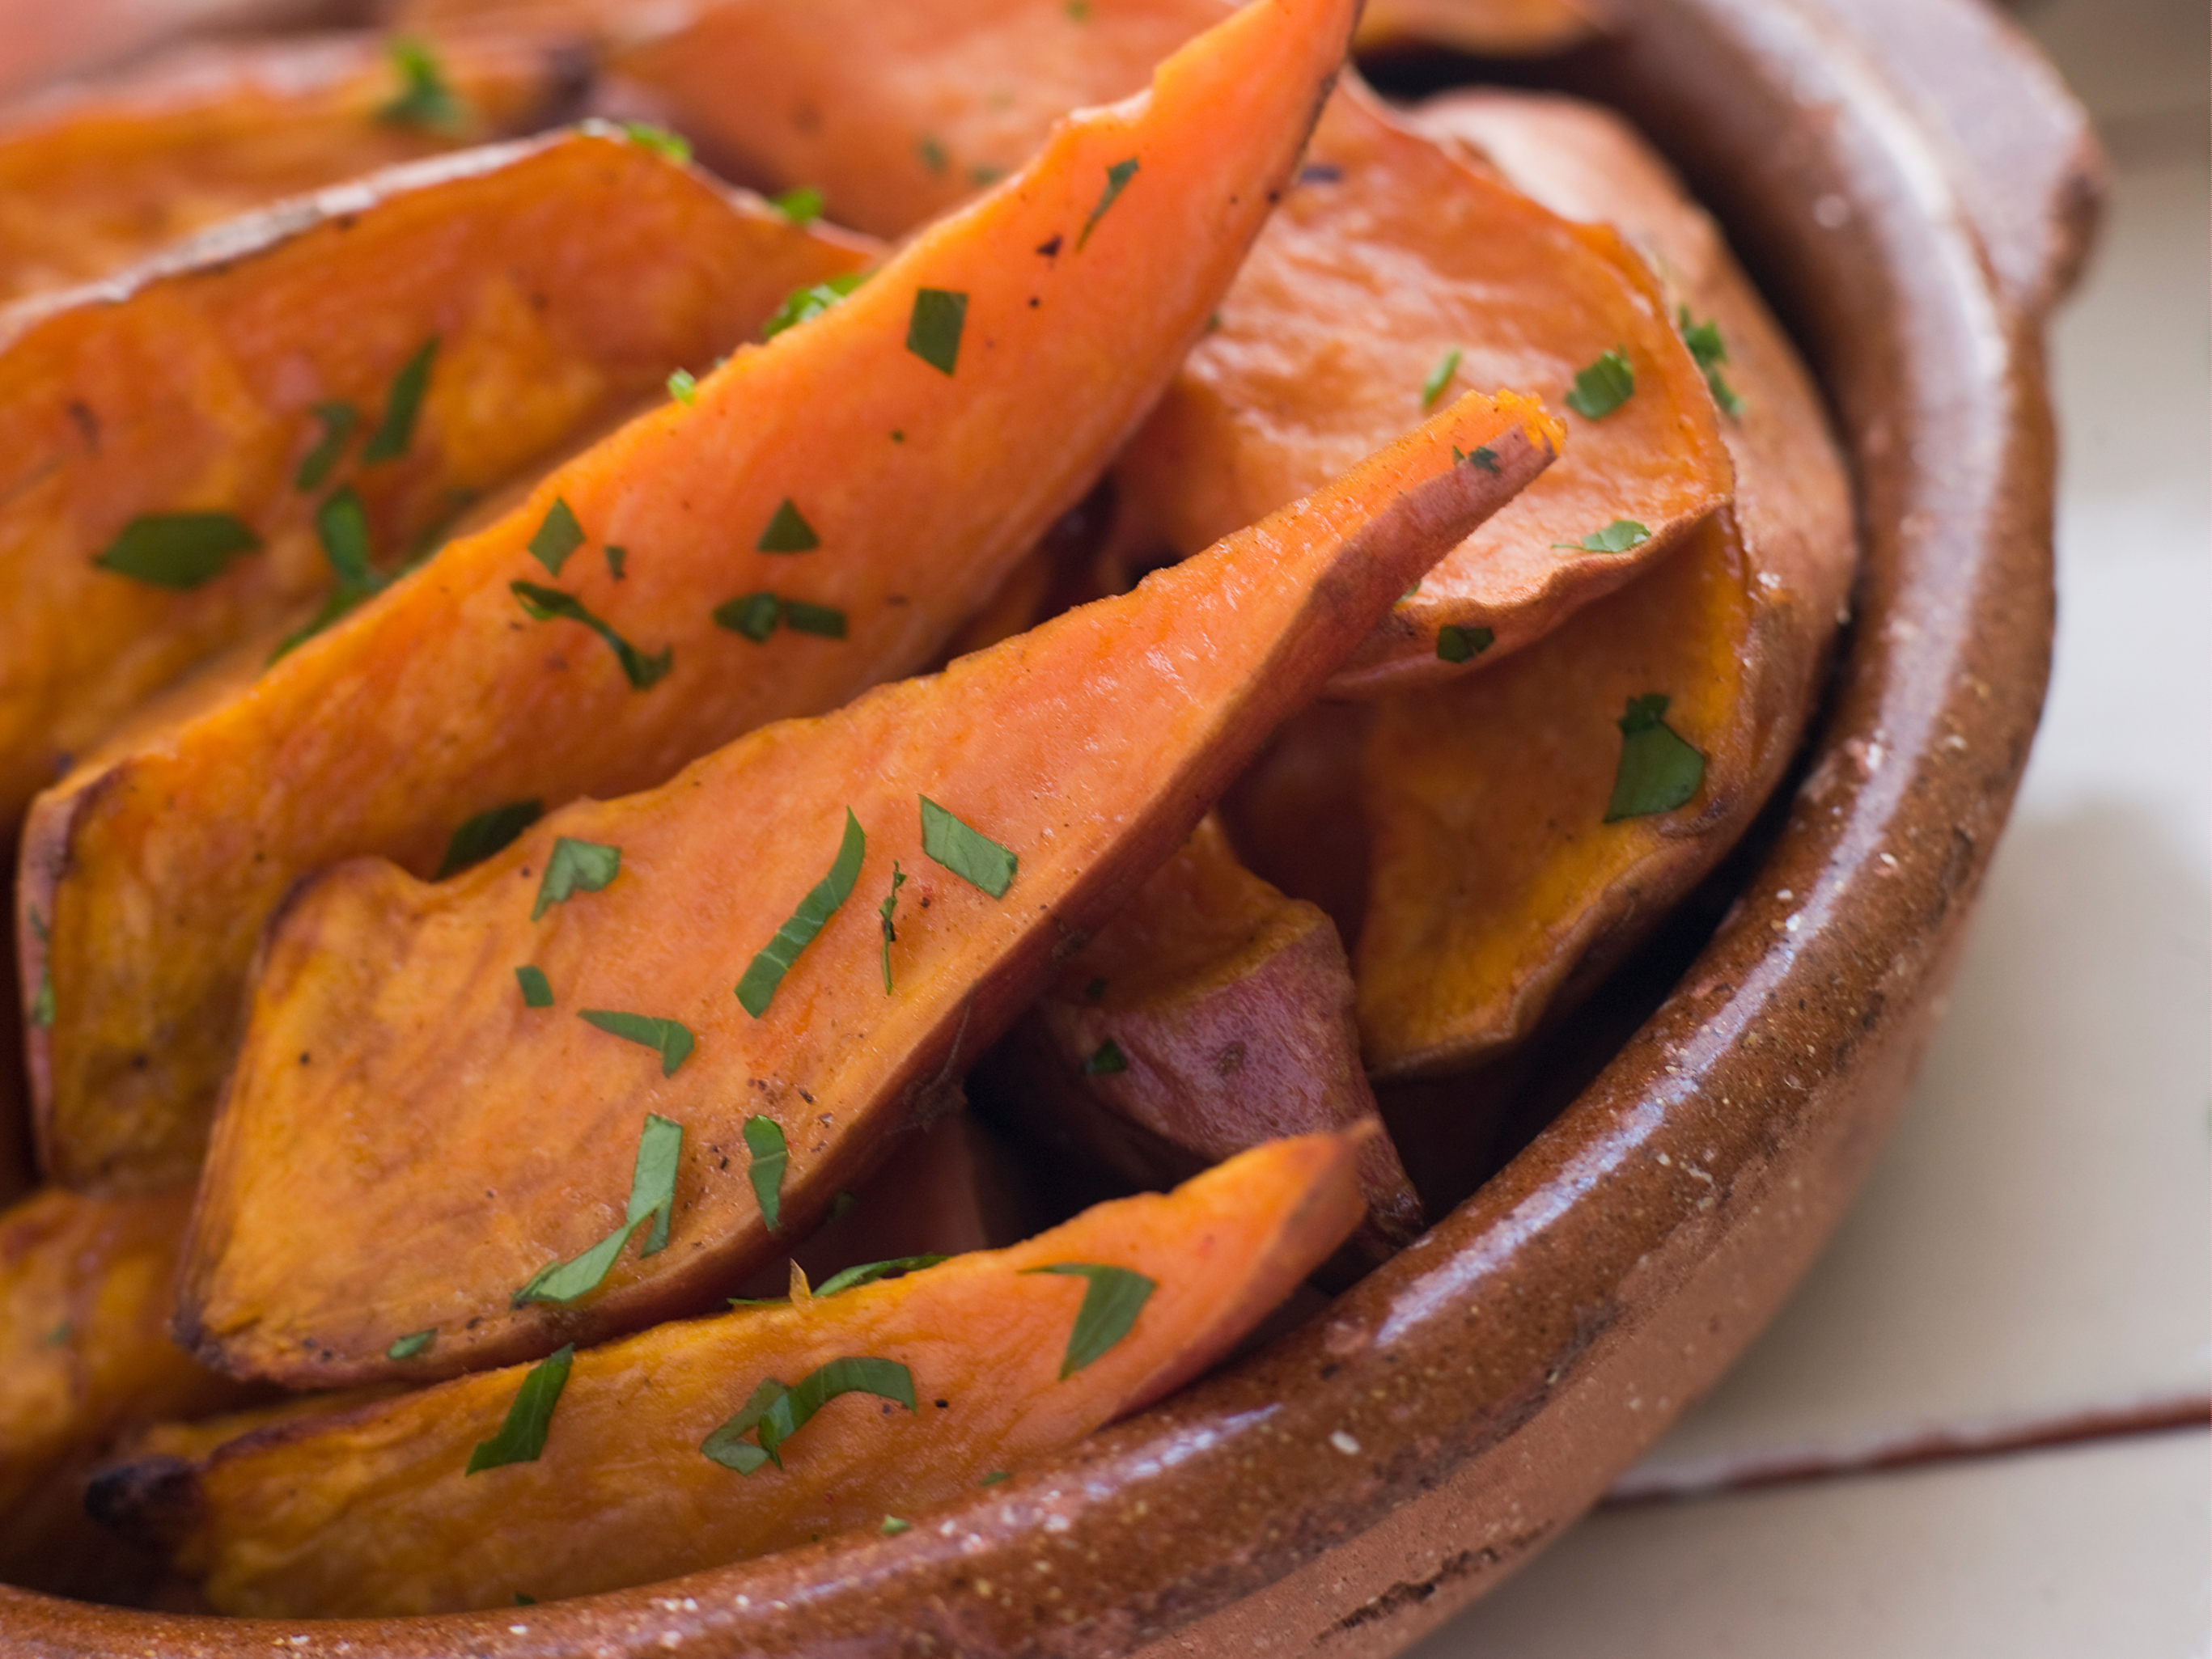 In the kitchen with Kelley: Garlic Sweet Potato Wedges